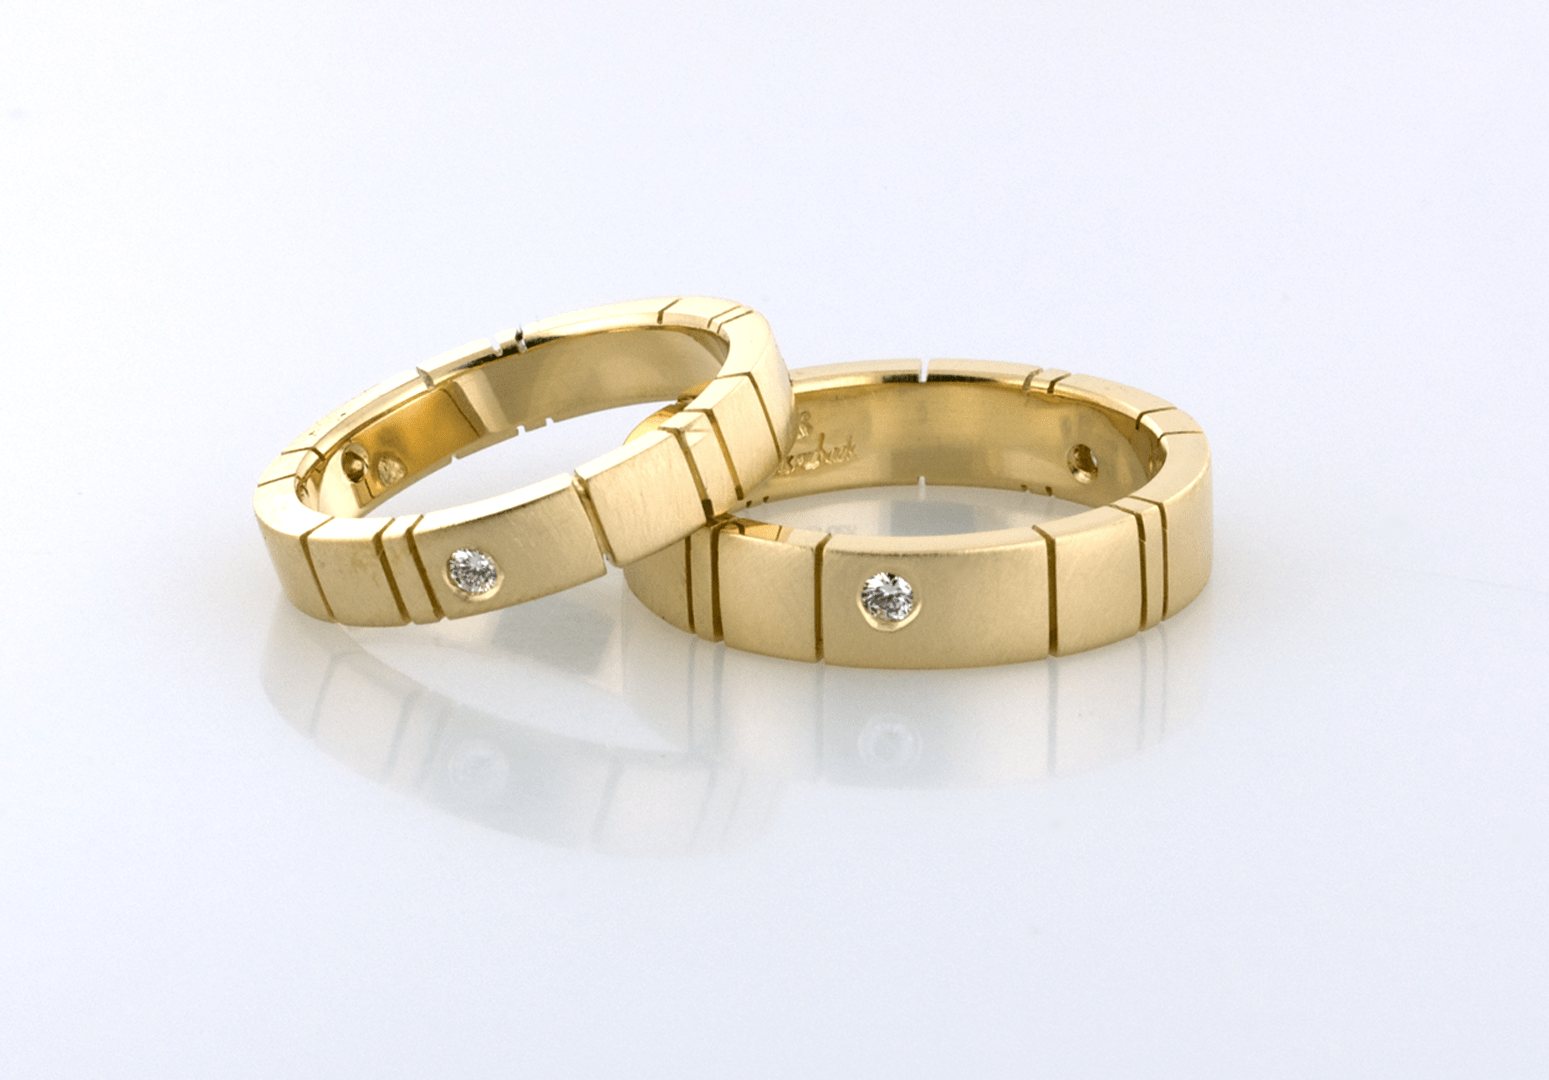 gold wedding bands diamond accents r gold wedding bands Click here for purchase or inquiry 14KT yellow gold bands